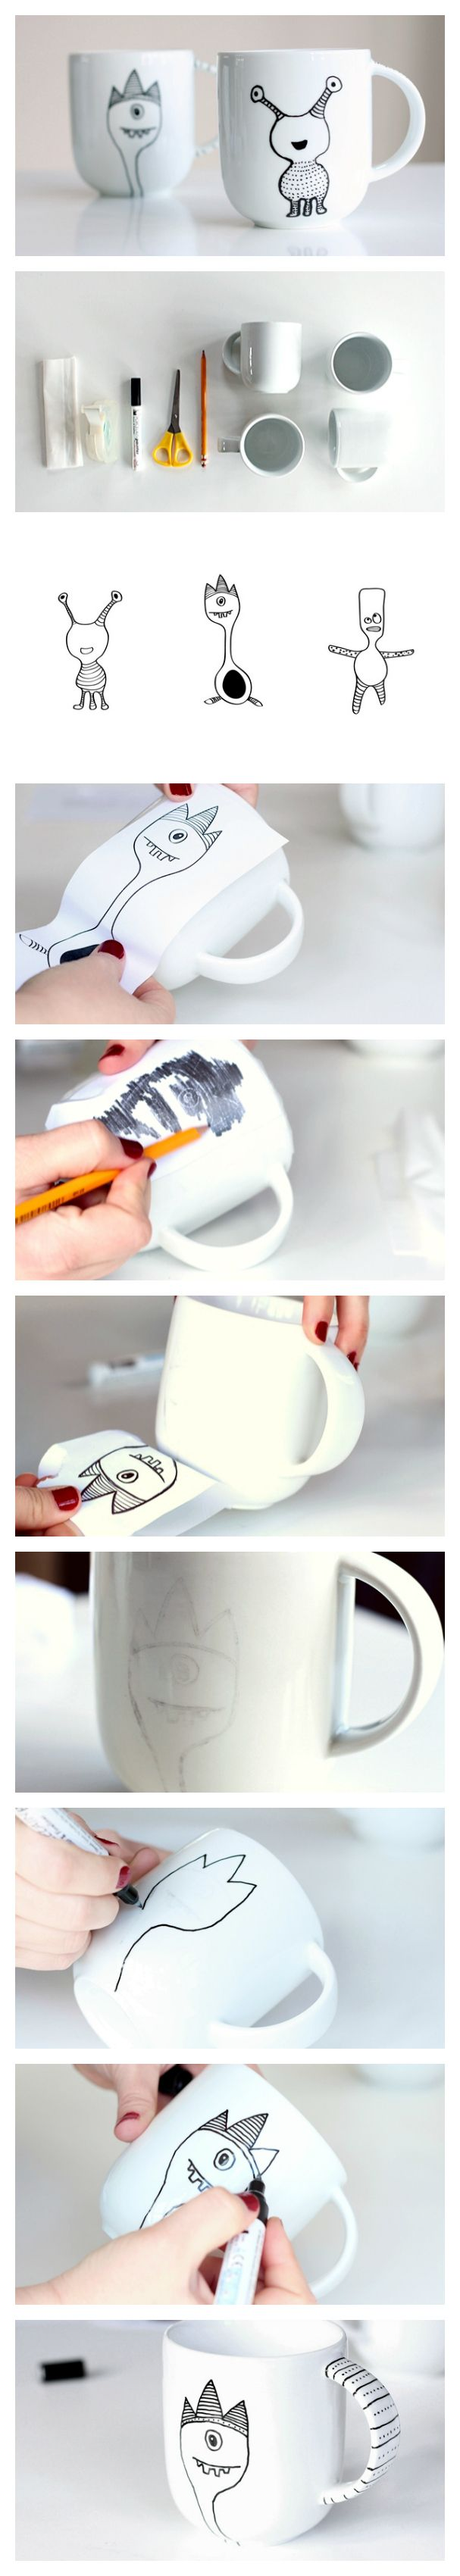 #DIY Learn how to decorate a coffee mug with a porcelain marker.avec bombomme Diy mug original pour la fête des mères et des pères